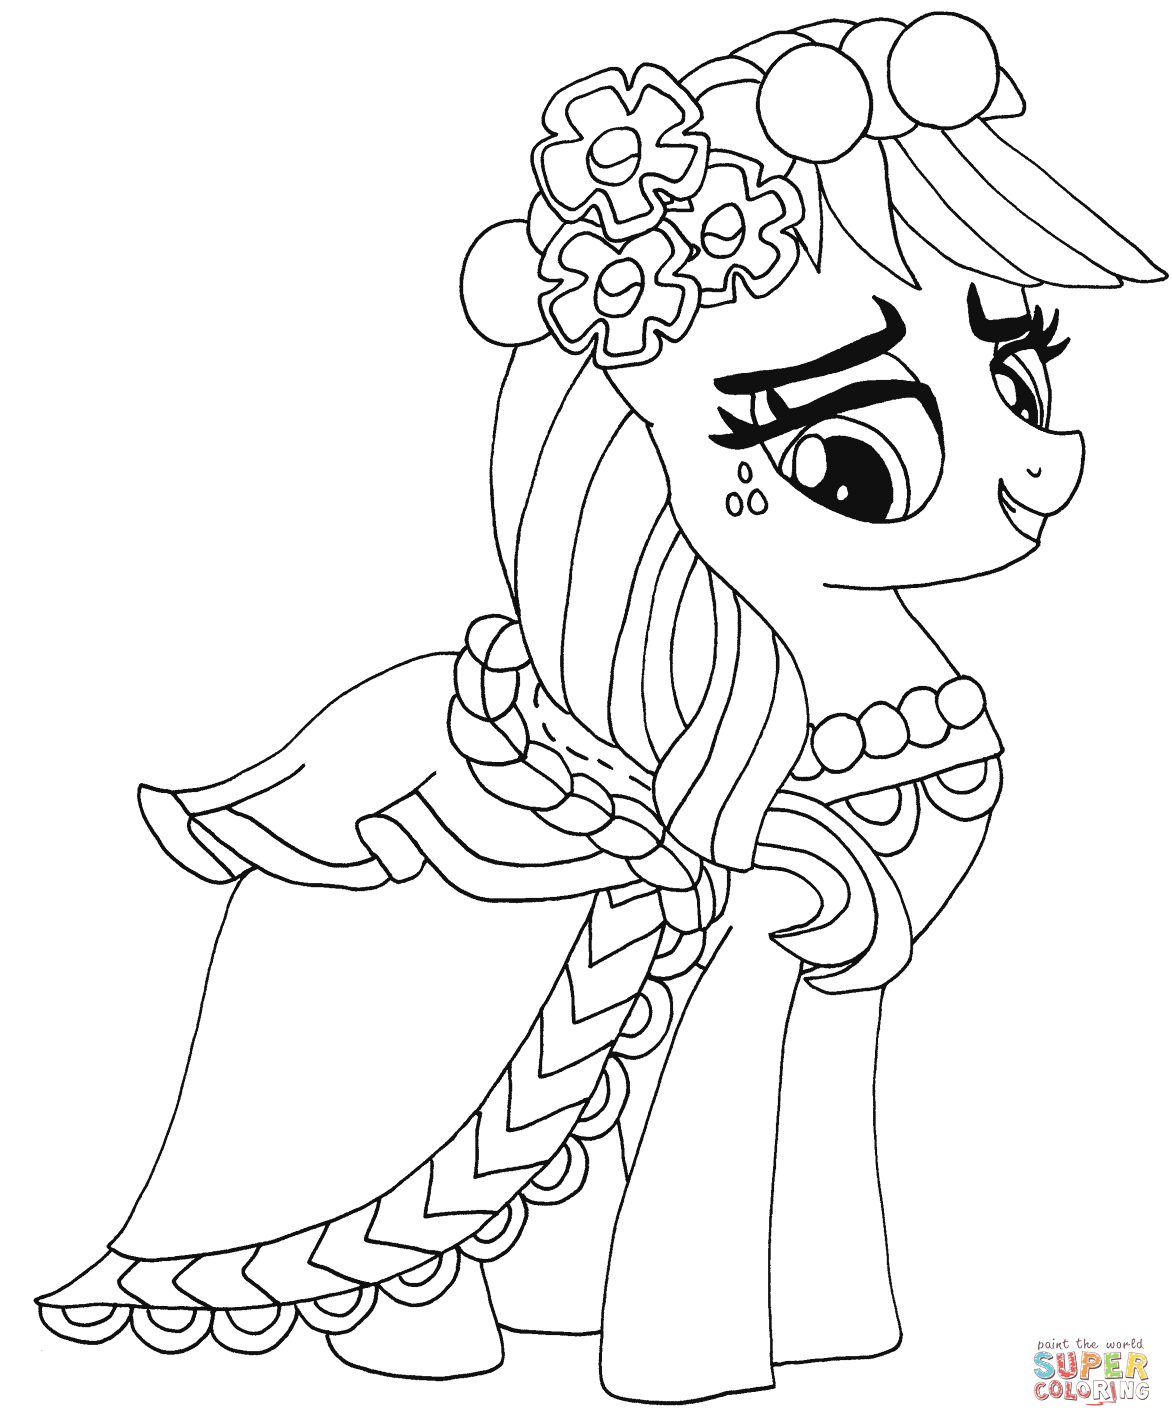 Ausmalbilder My Little Pony Baby : My Little Pony Coloring Pages Pony Coloring Pages Mlp Coloring Pages